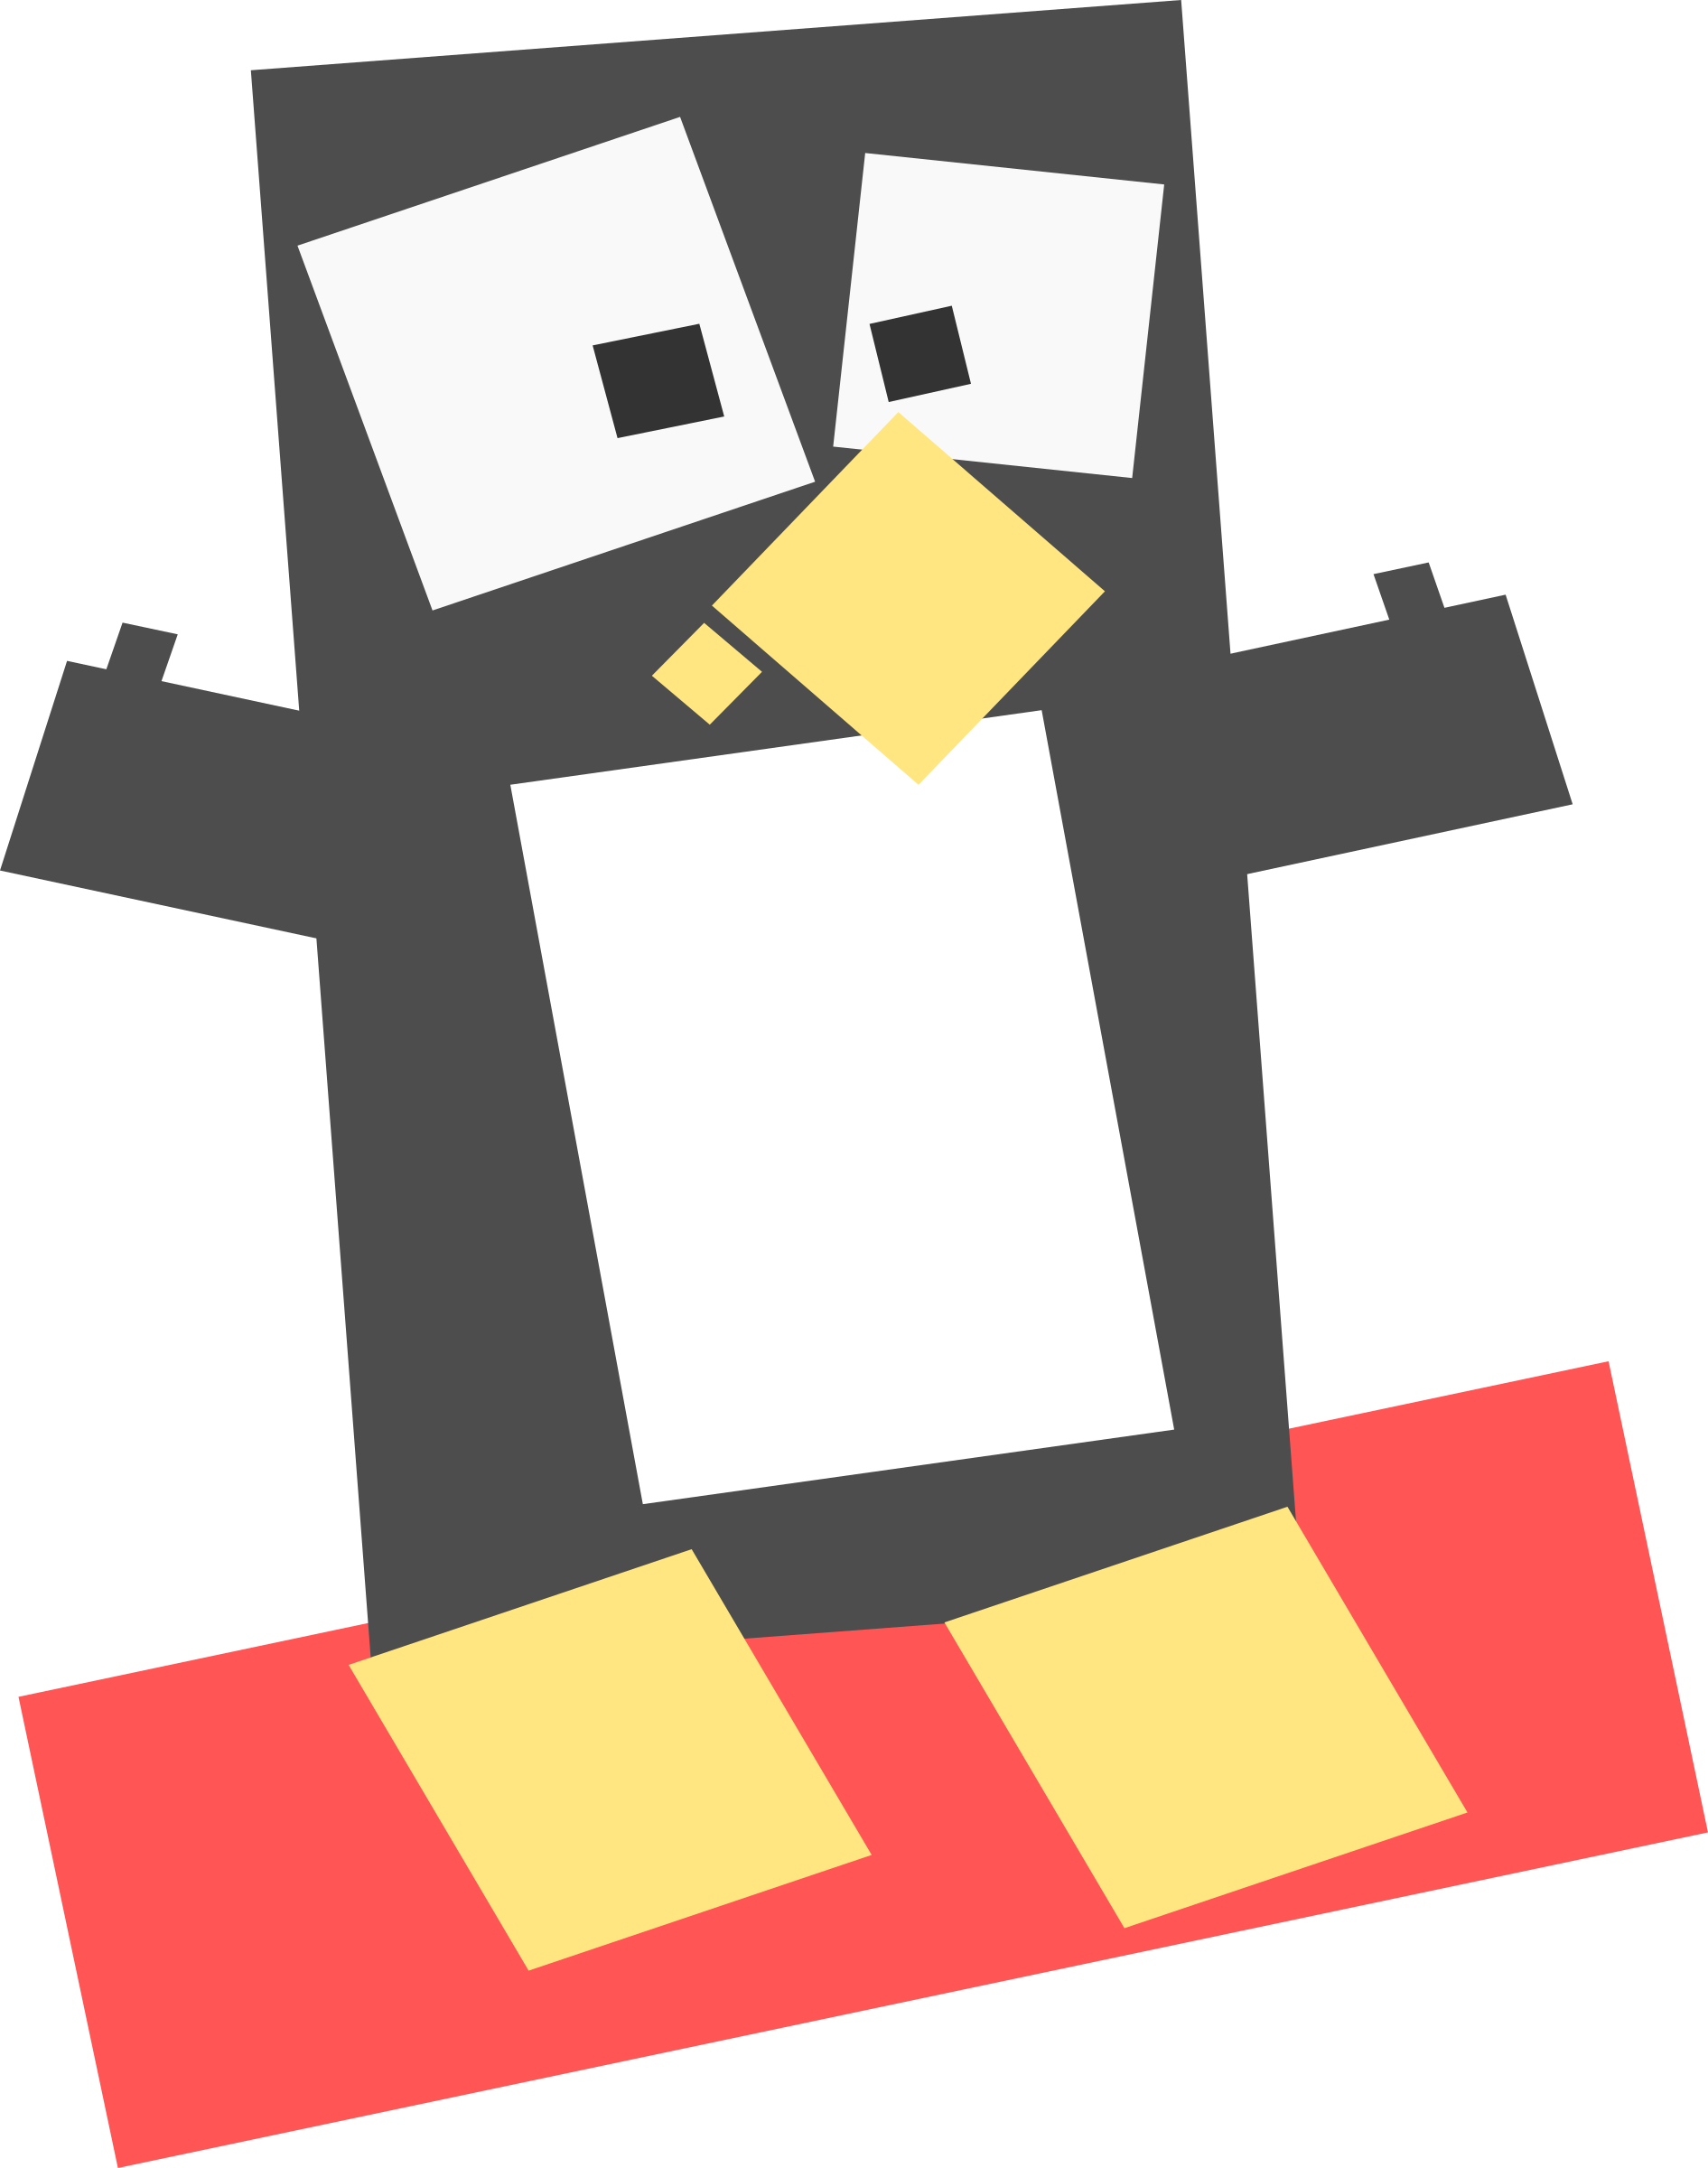 Square animal cartoon penguin by Dog99x